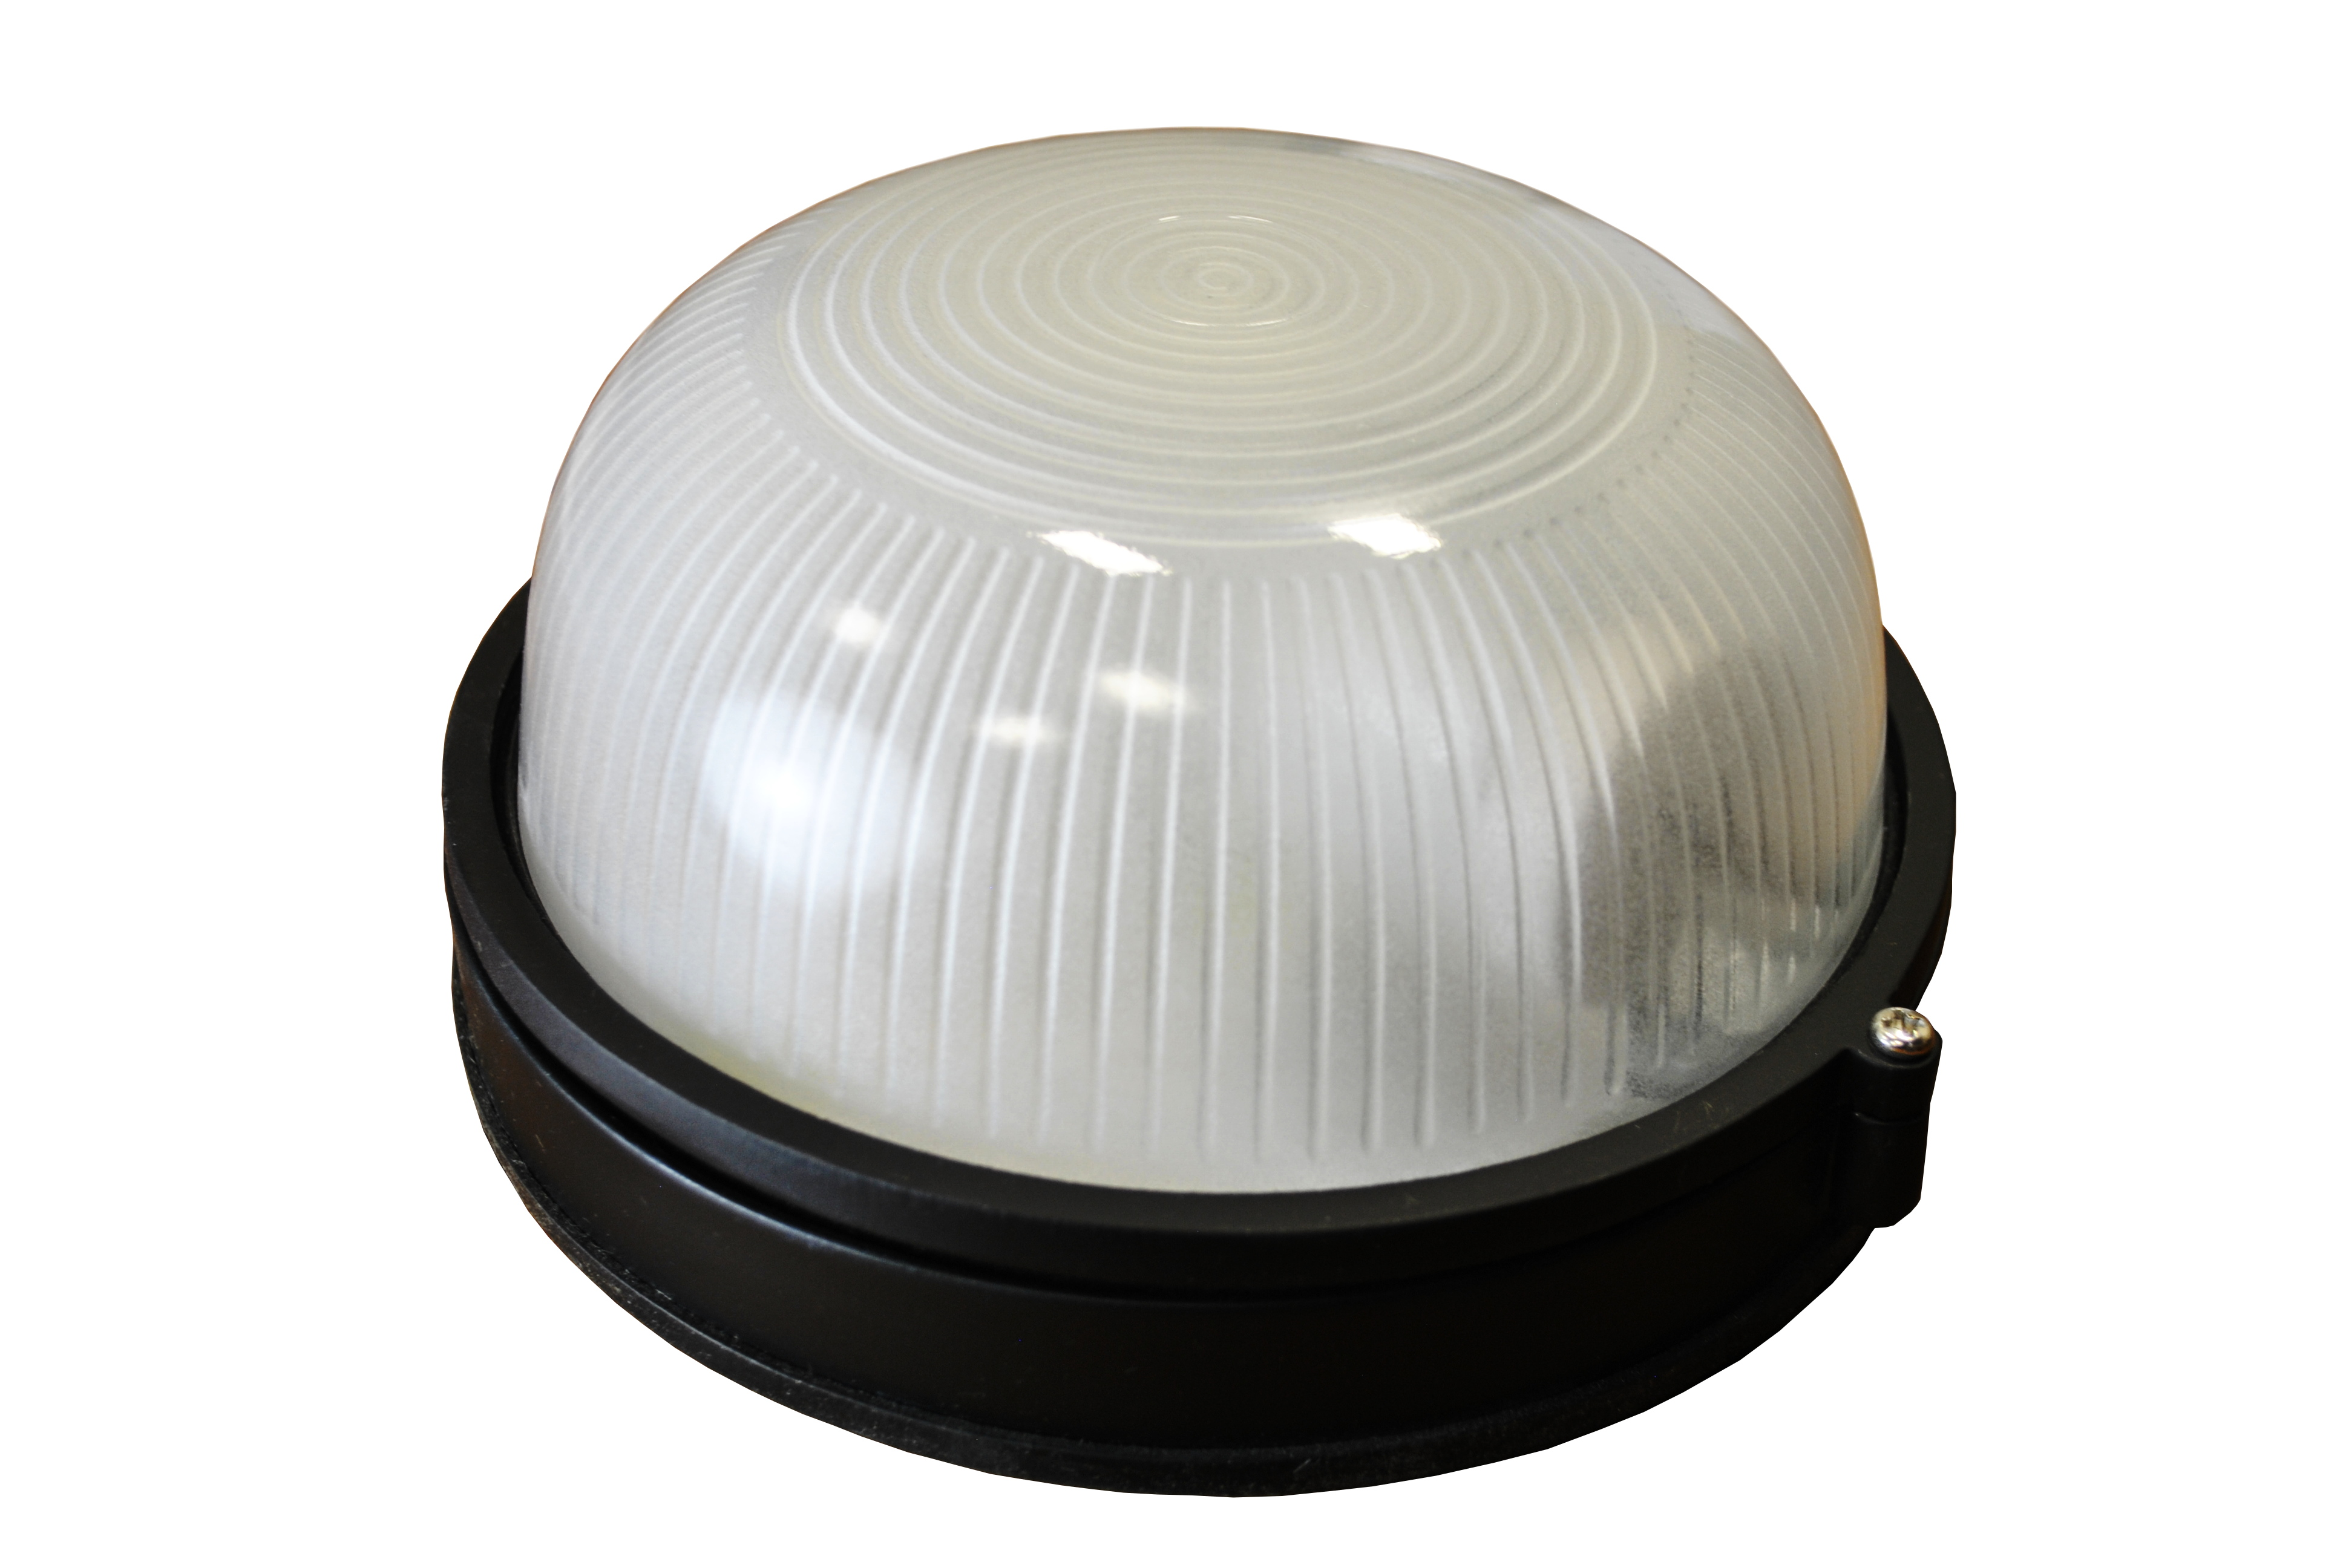 Round Sauna Light- Explosion Proof Sauna Light